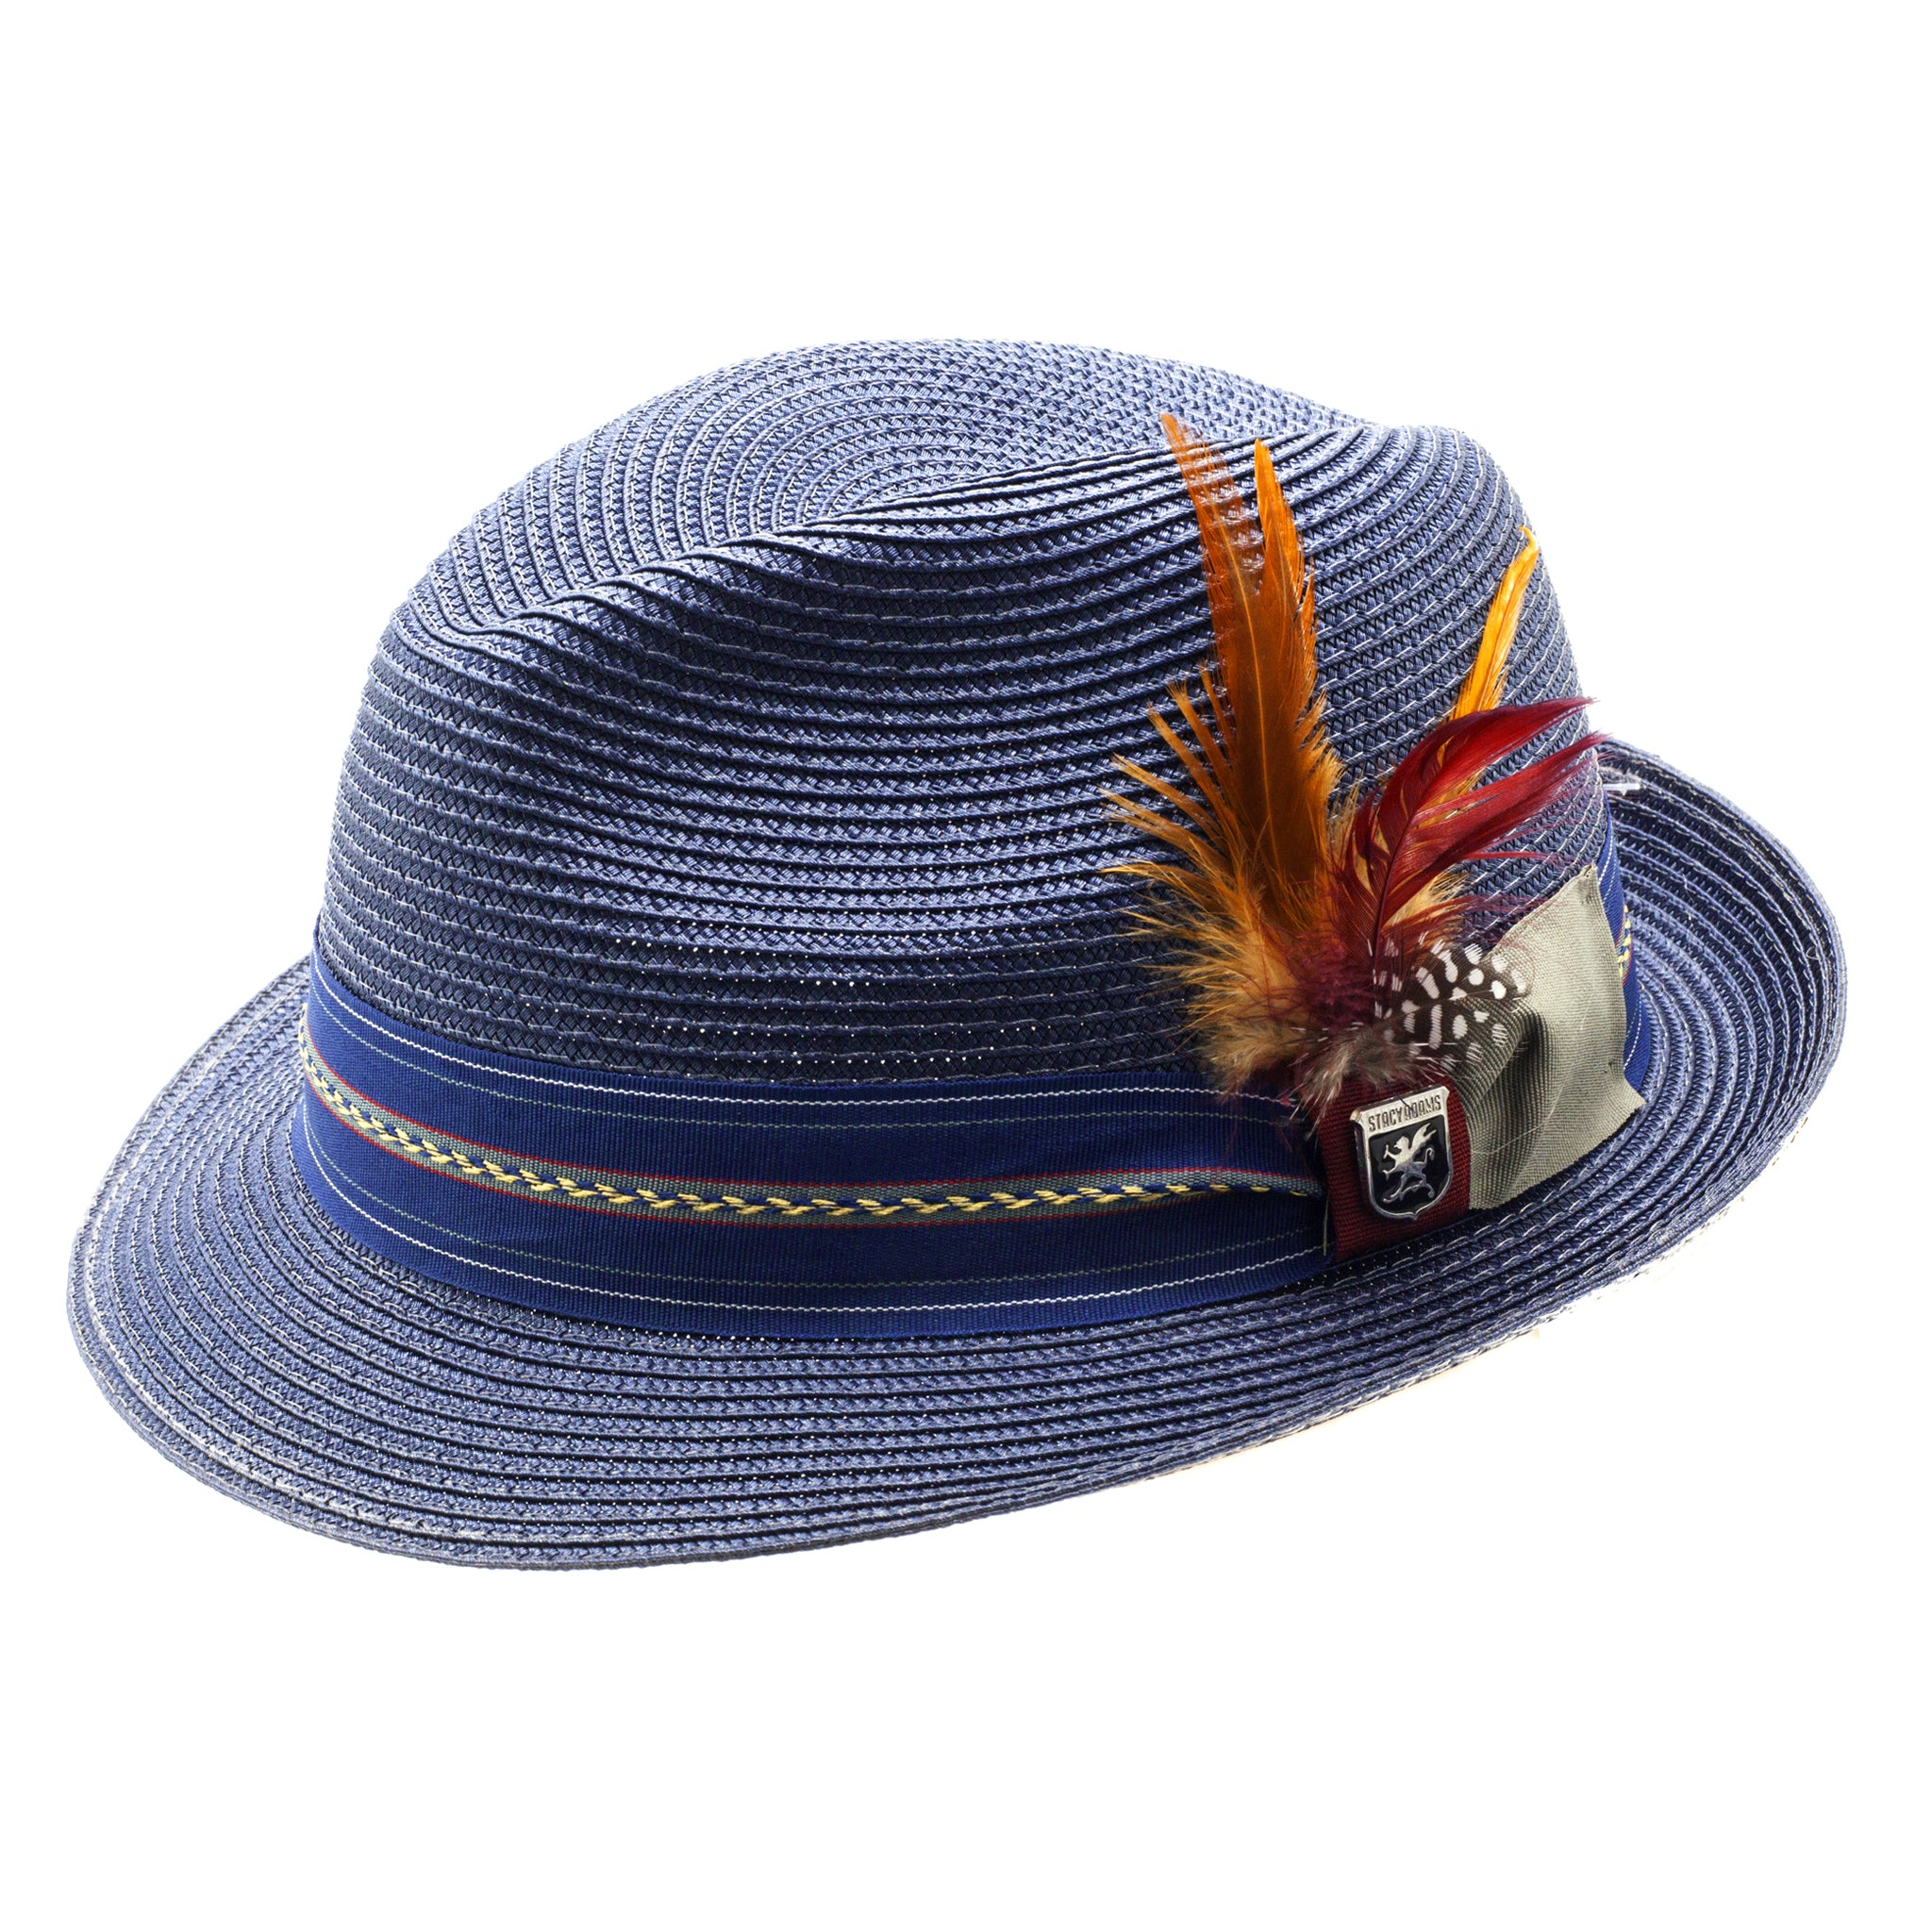 STACY ADAMS SPRING HAT / NAVY